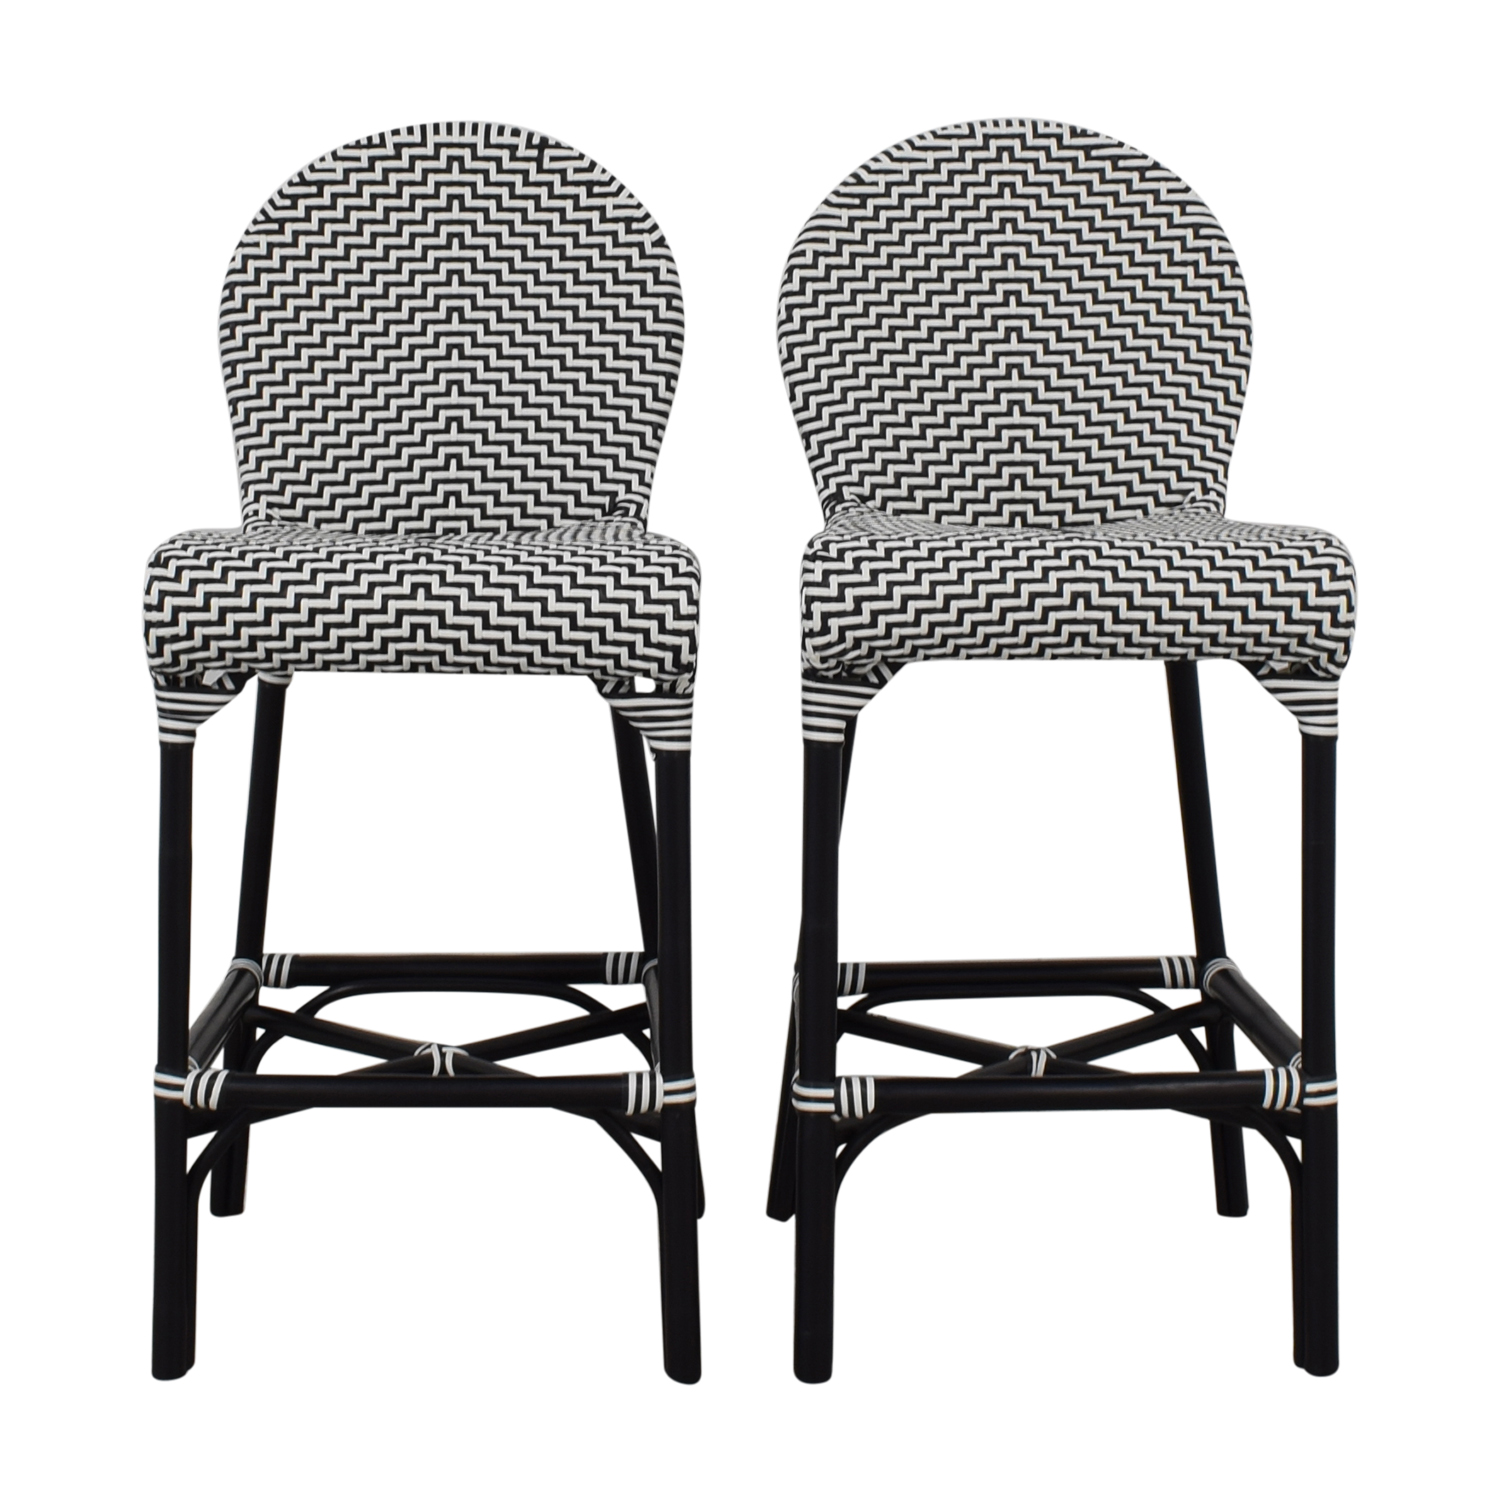 CB2 Indoor Outdoor Stools CB2